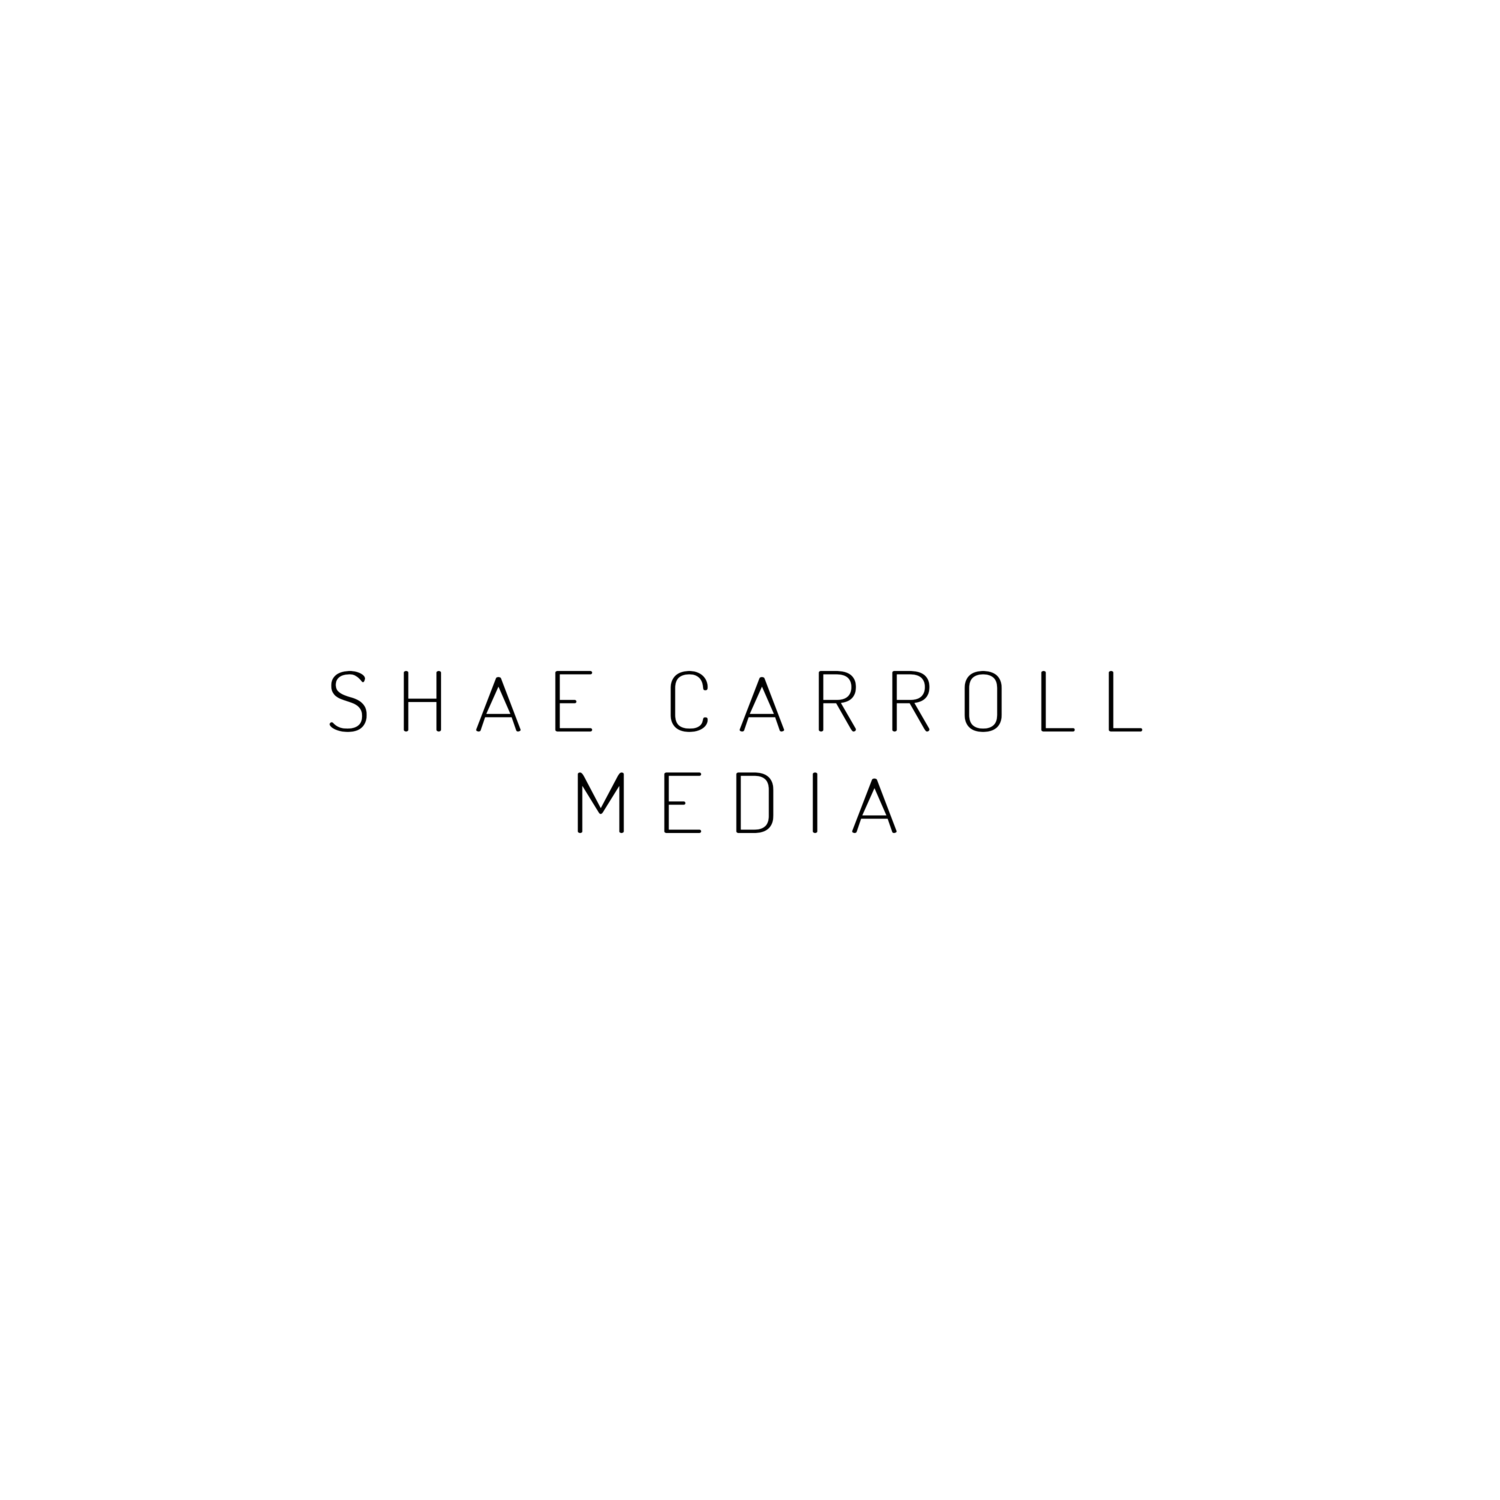 Shae Carroll Media